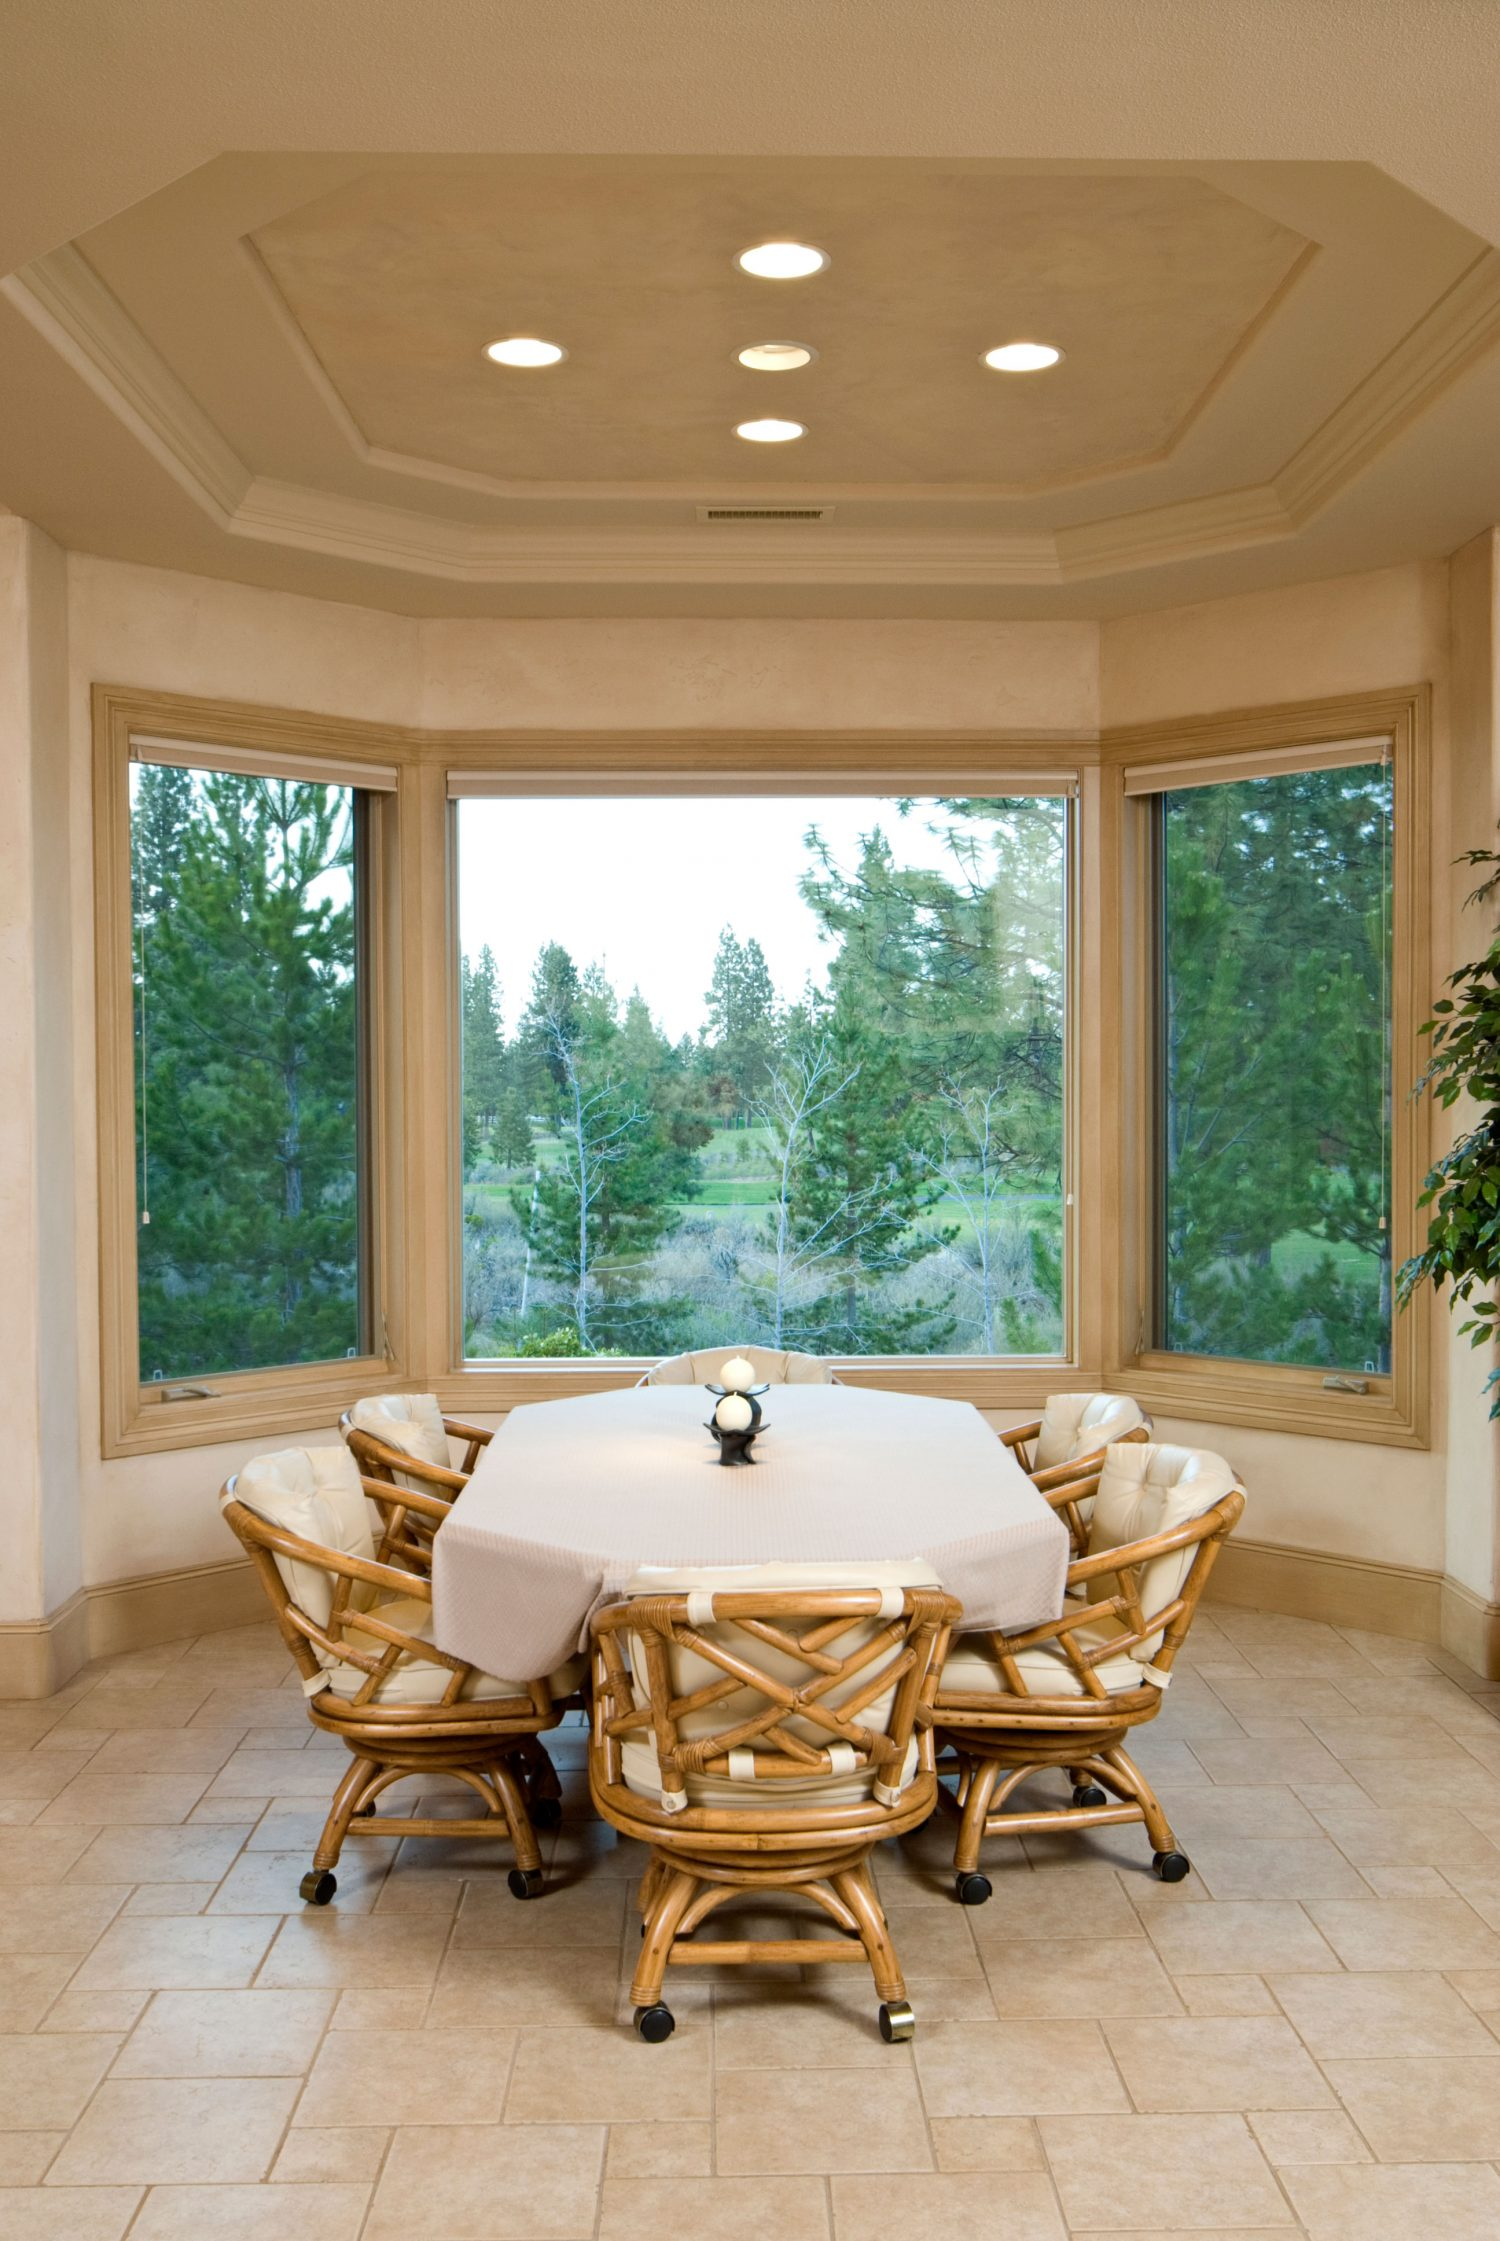 A dining room with large, open windows showing the trees outside the room.